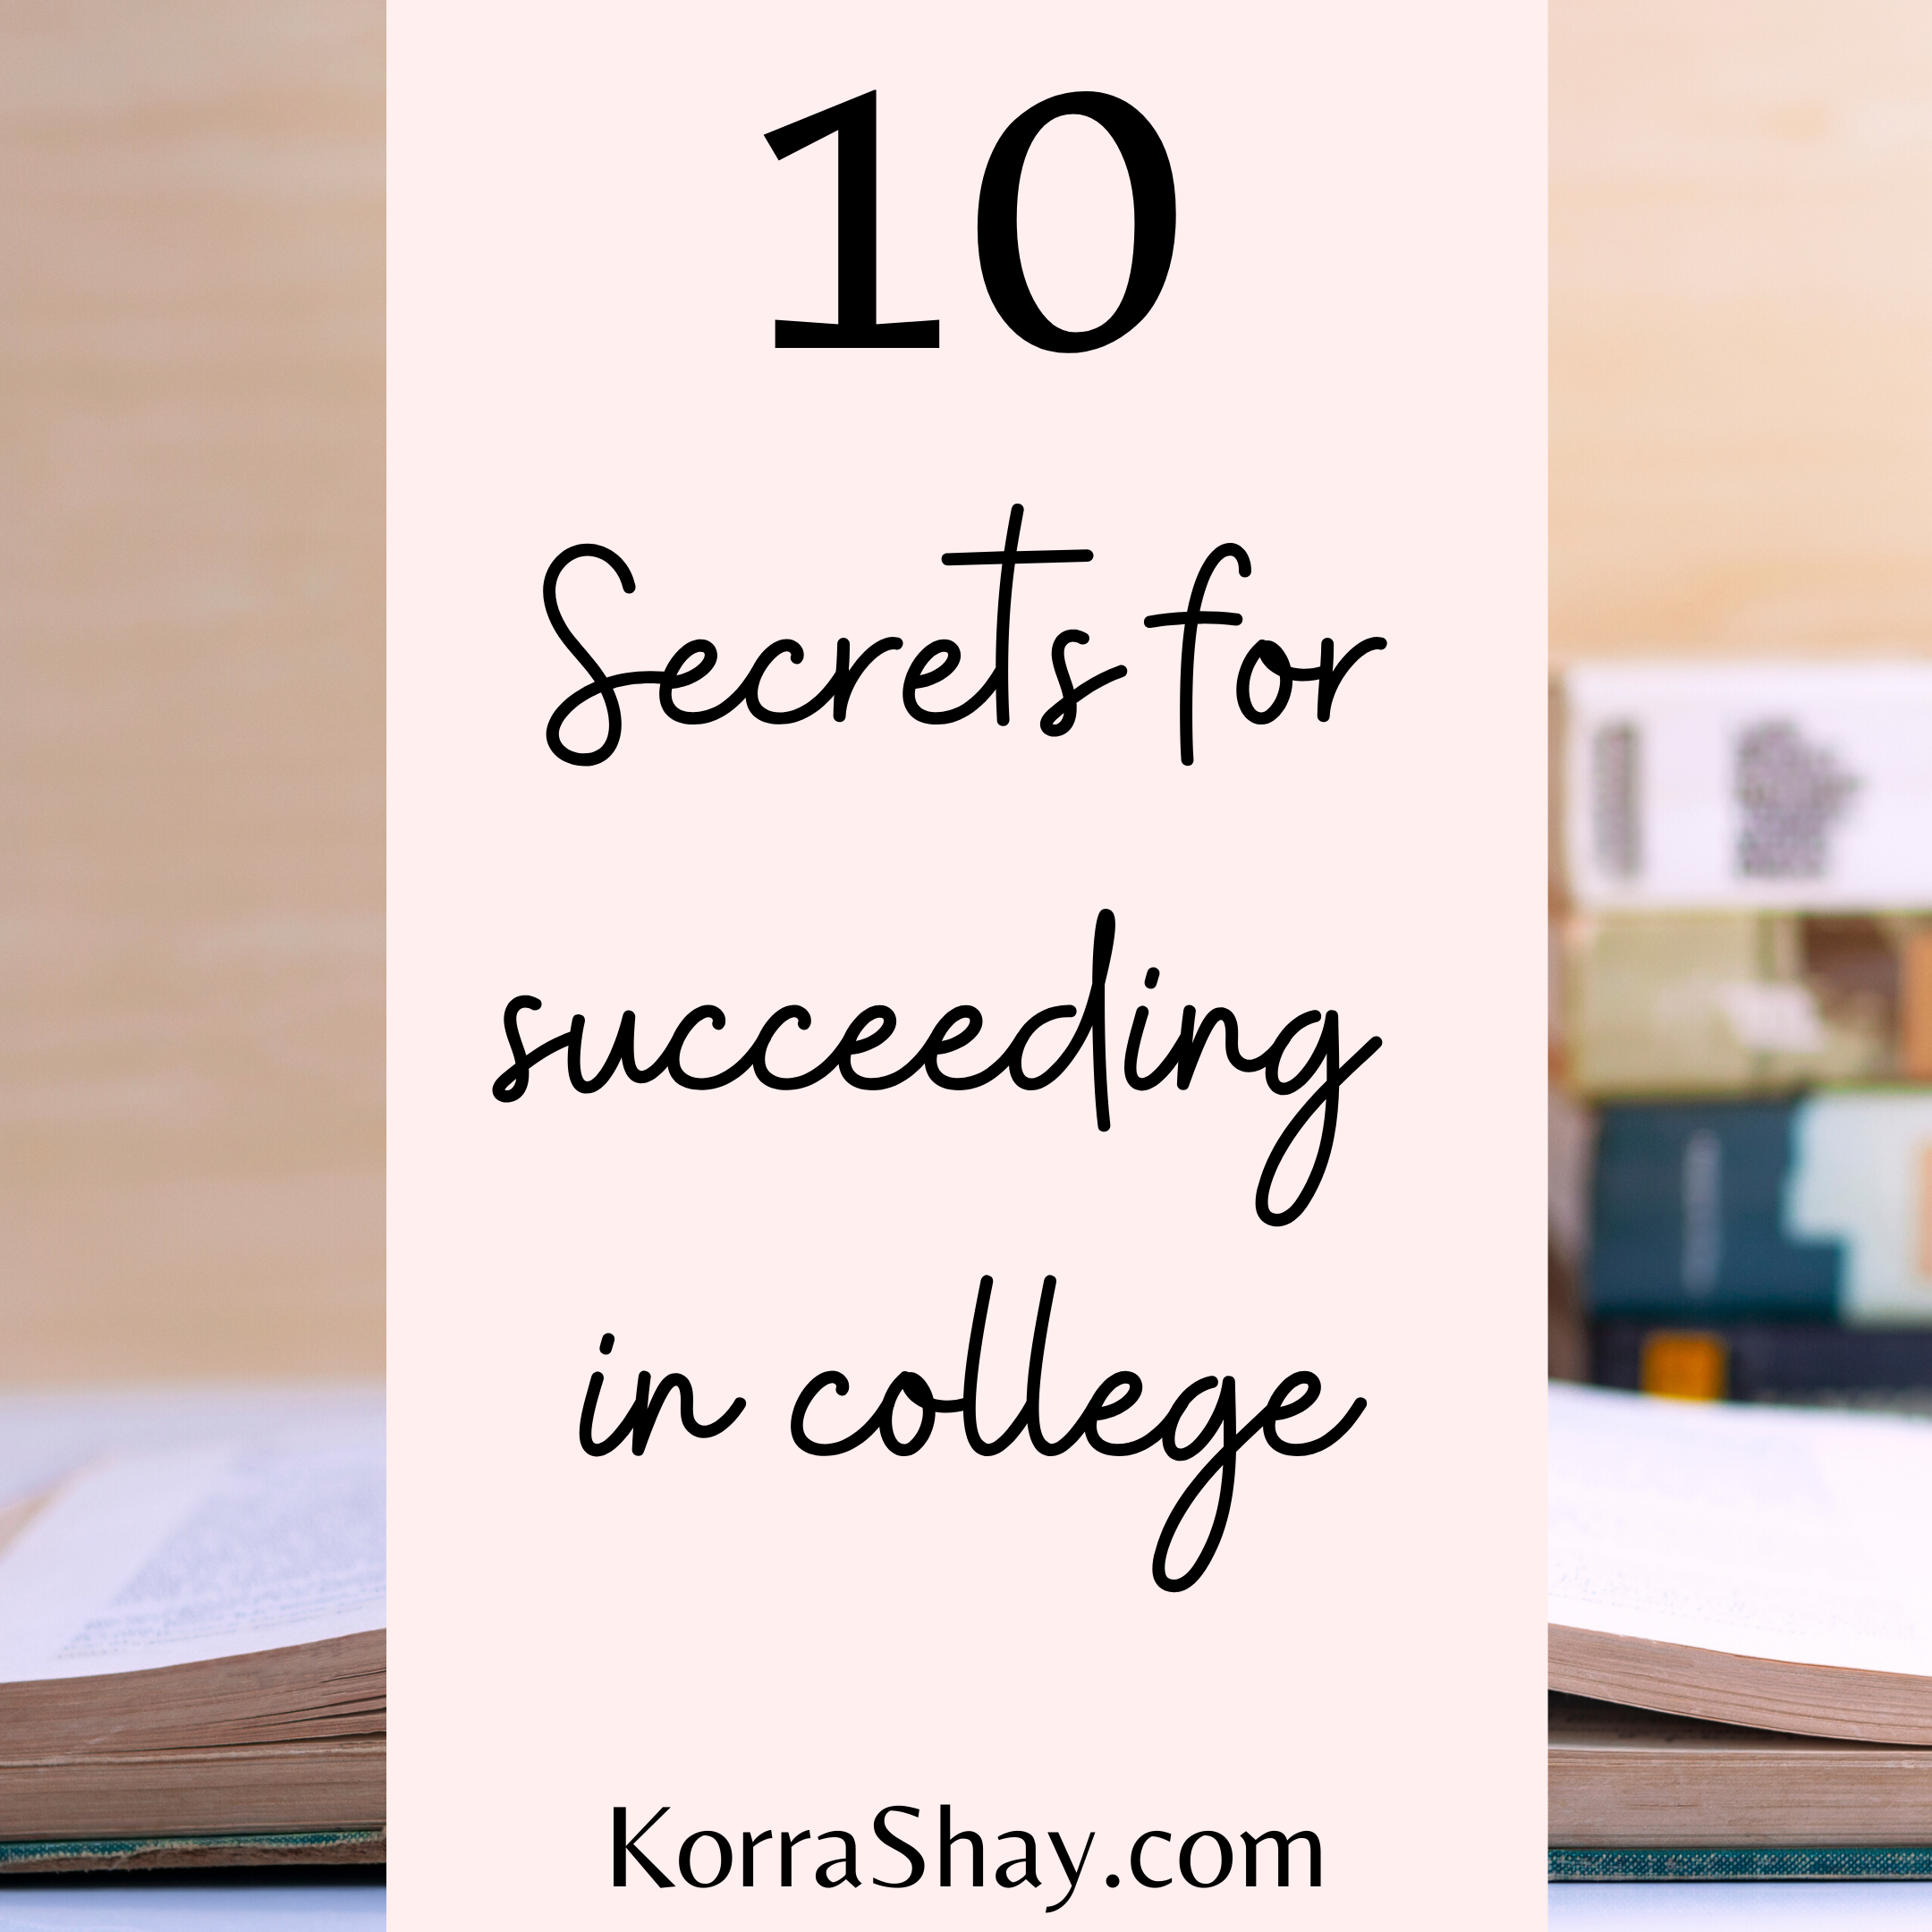 10 secrets for succeeding in college!